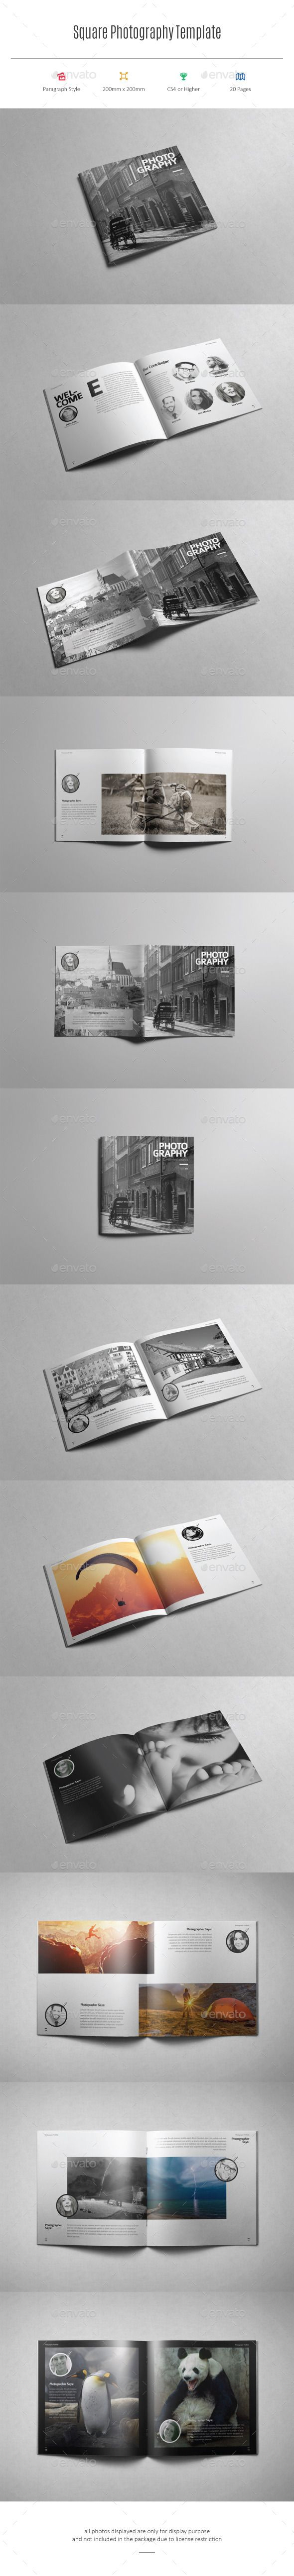 Square Photography Template #design #printdesign Download: http://graphicriver.net/item/square-photography-template/12138991?ref=ksioks